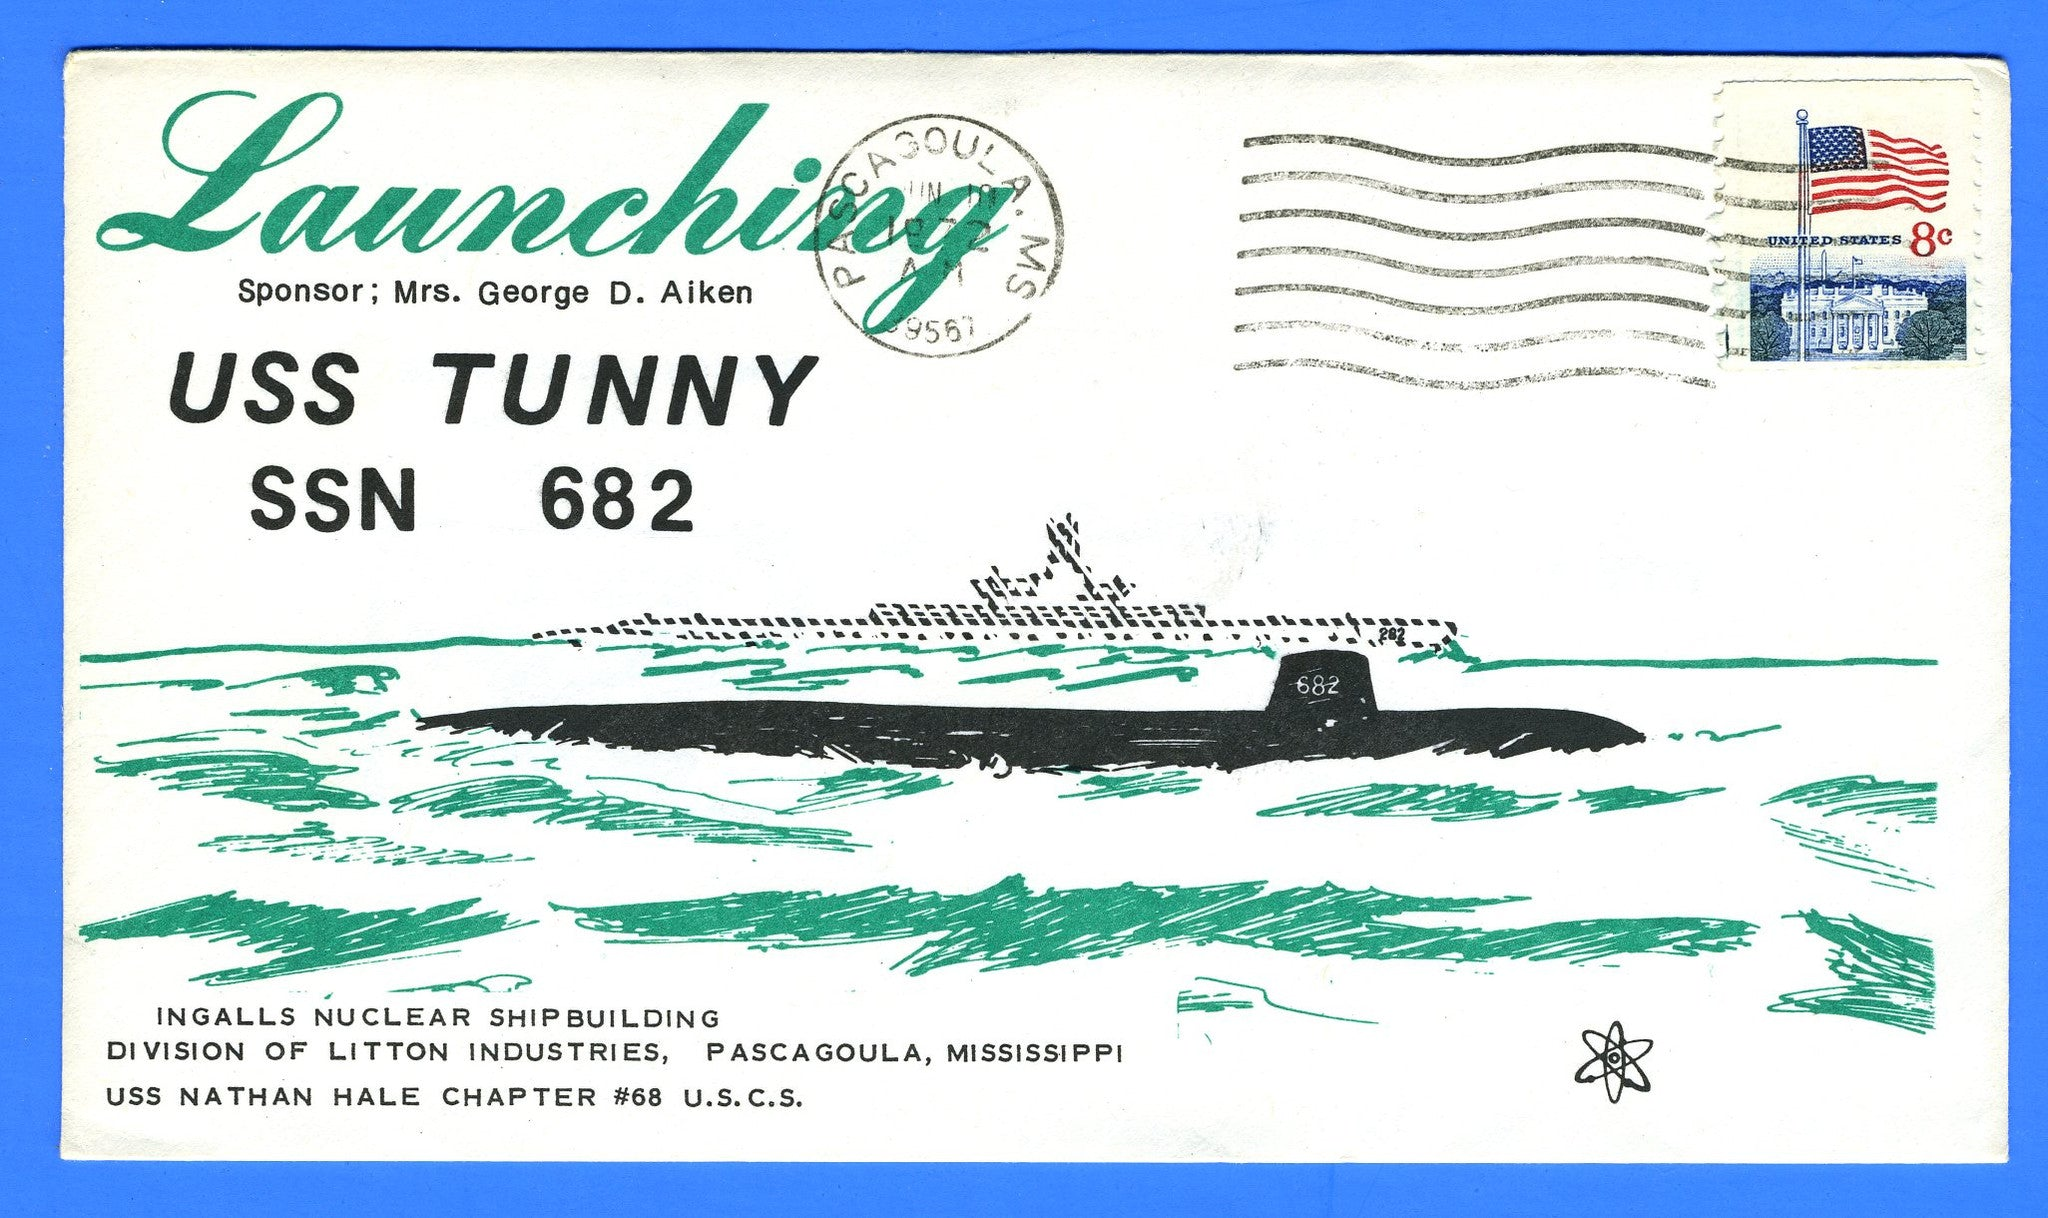 USS Tunny SSN-682 Launching June 10, 1972 - Cachet by USS Nathan Hale Chapter No. 68, USCS